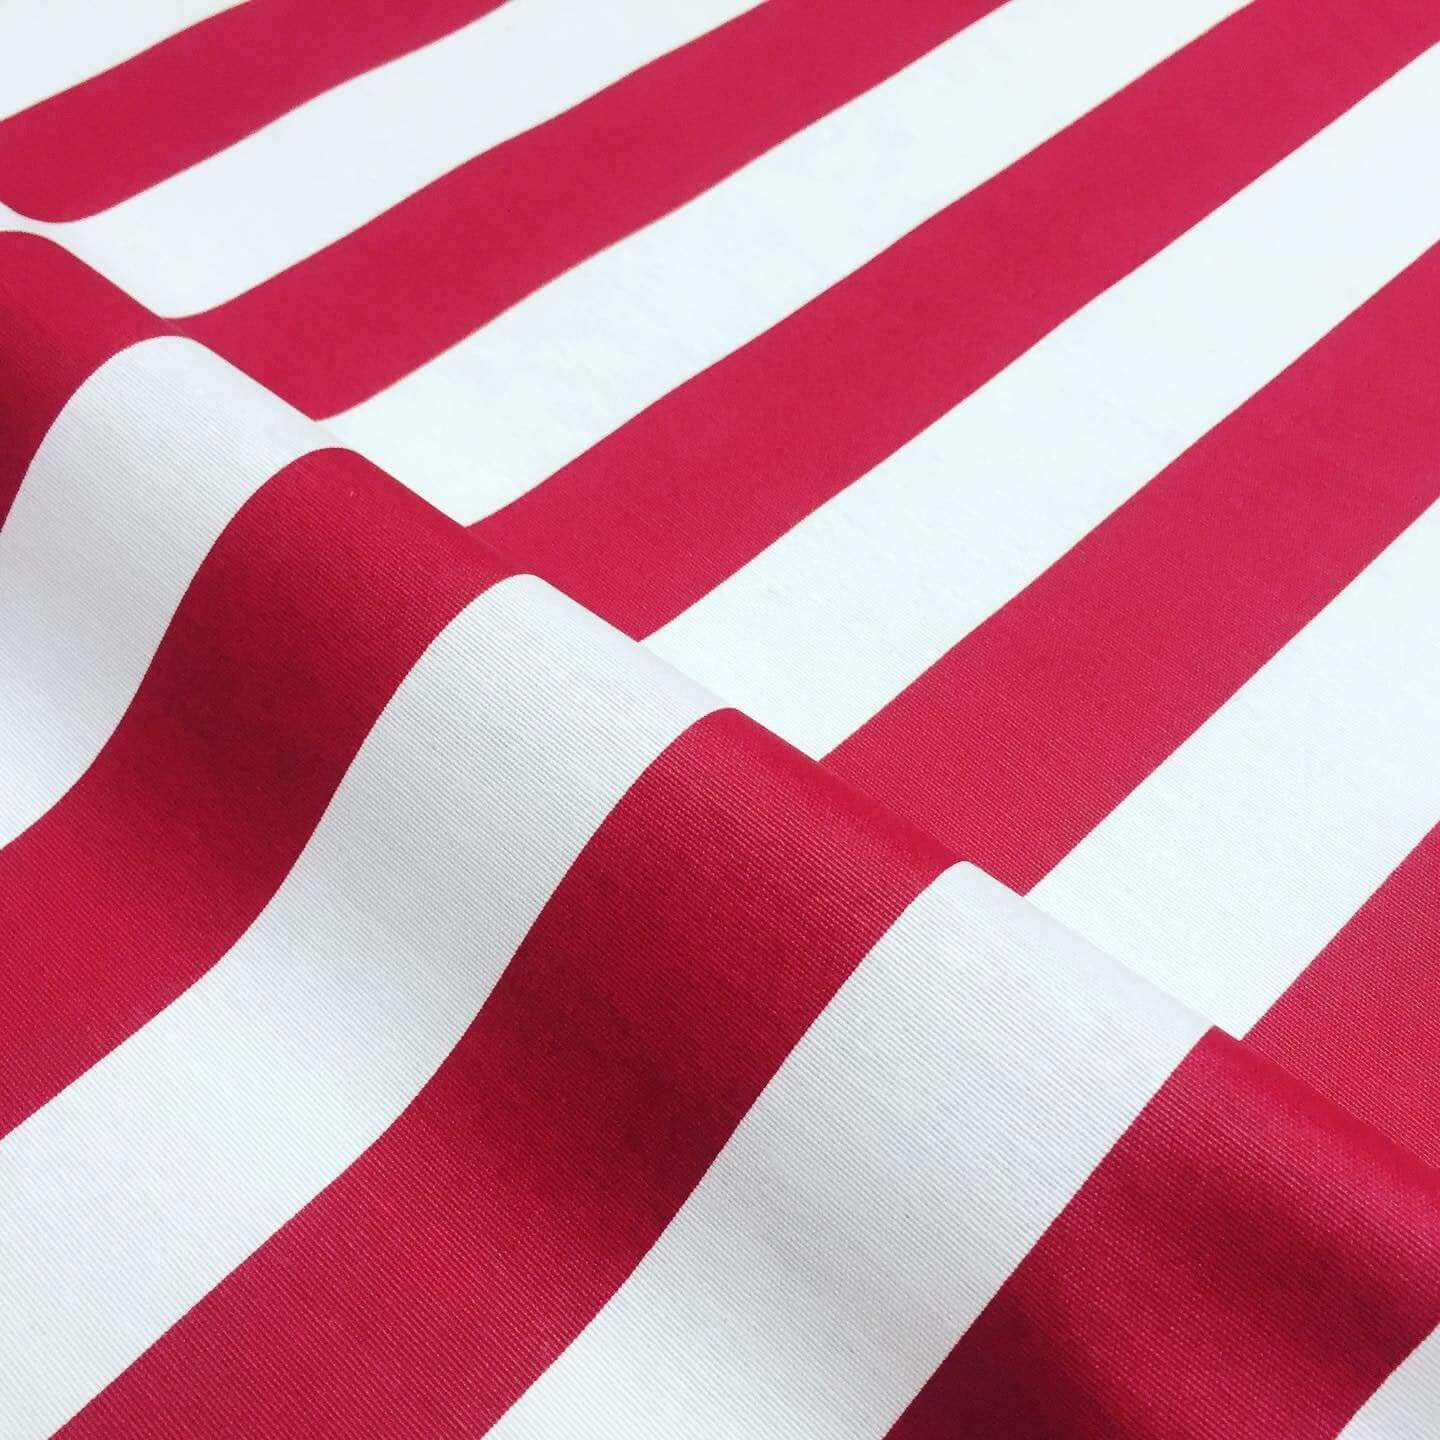 Teflon Waterproof Outdoor Fabric for cushion, gazebo, beach - 140cm wide, sold by metre -RED & White Stripe Material Stripes